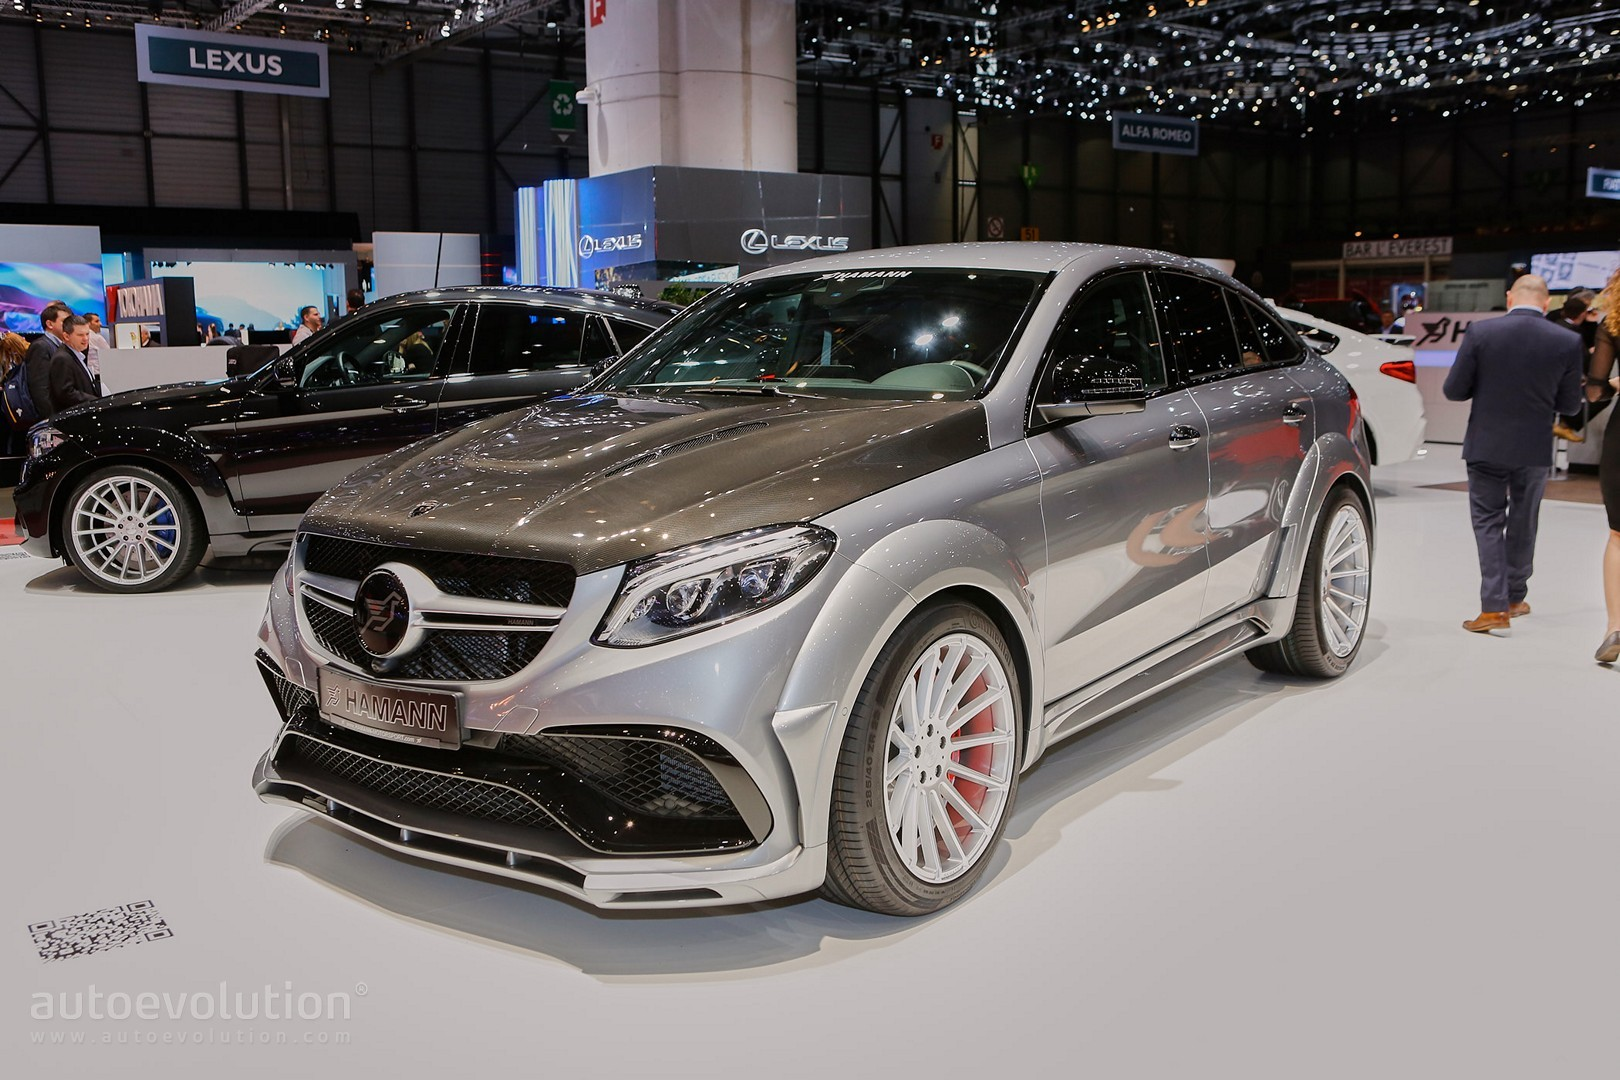 Hamann Is All About Tuning Bmw And Mercedes Sports Activity Coupes In Geneva Autoevolution